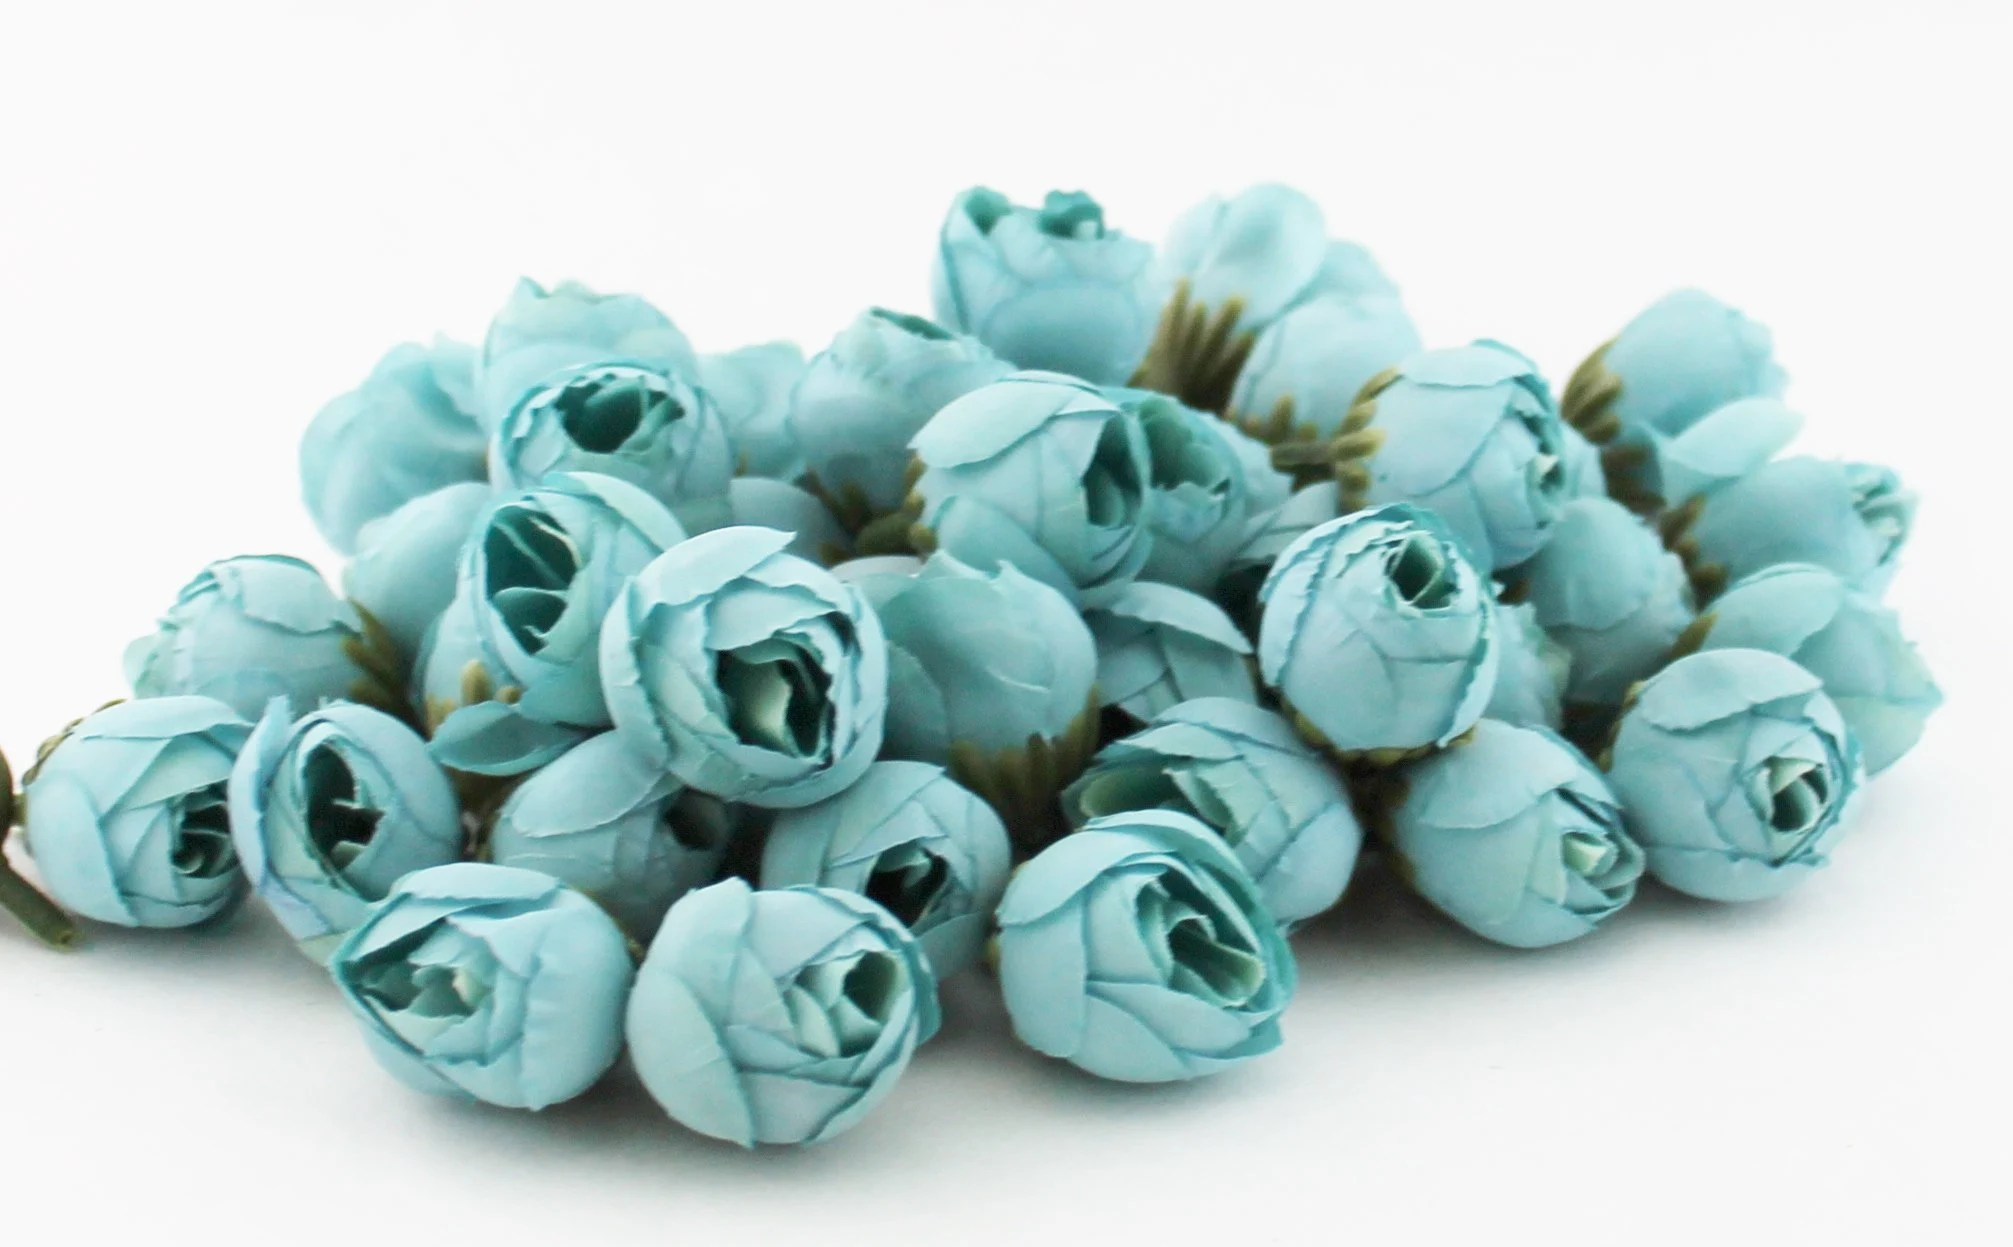 Teal flowers   Etsy Small Teal Flower Buds   Flower Crown   Wedding   Millinery Flowers    Corsage   Boutonniere   Artificial Peony Buds   The Blue Hutch PB34